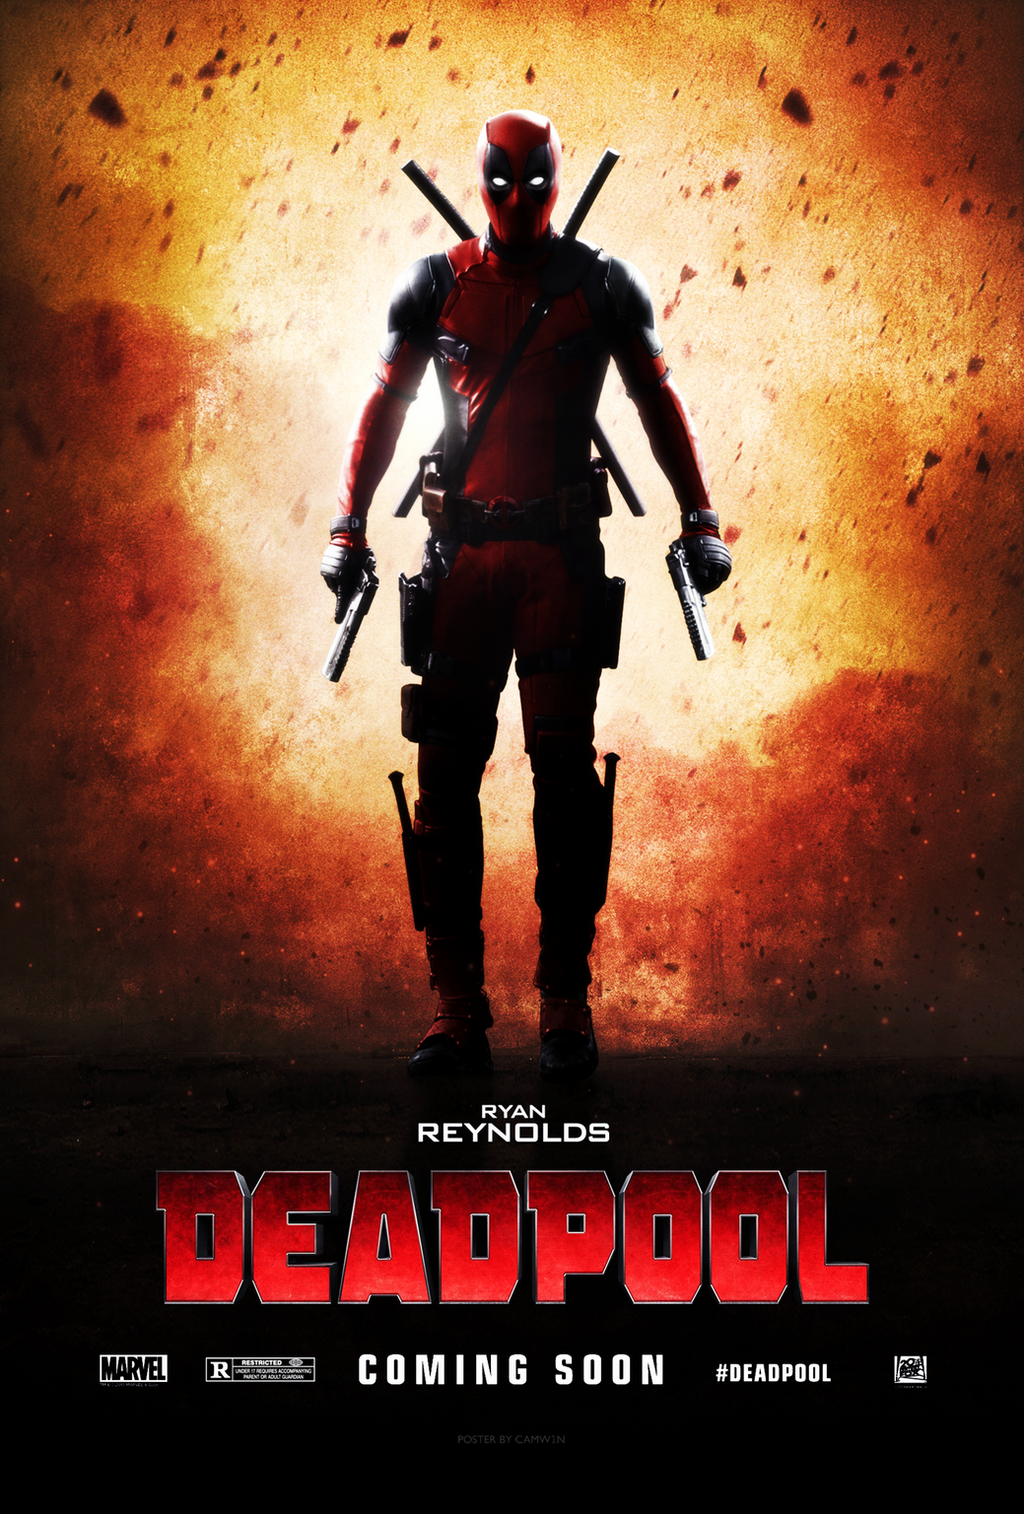 Deadpool (2016) - Teaser Poster by CAMW1N on DeviantArt